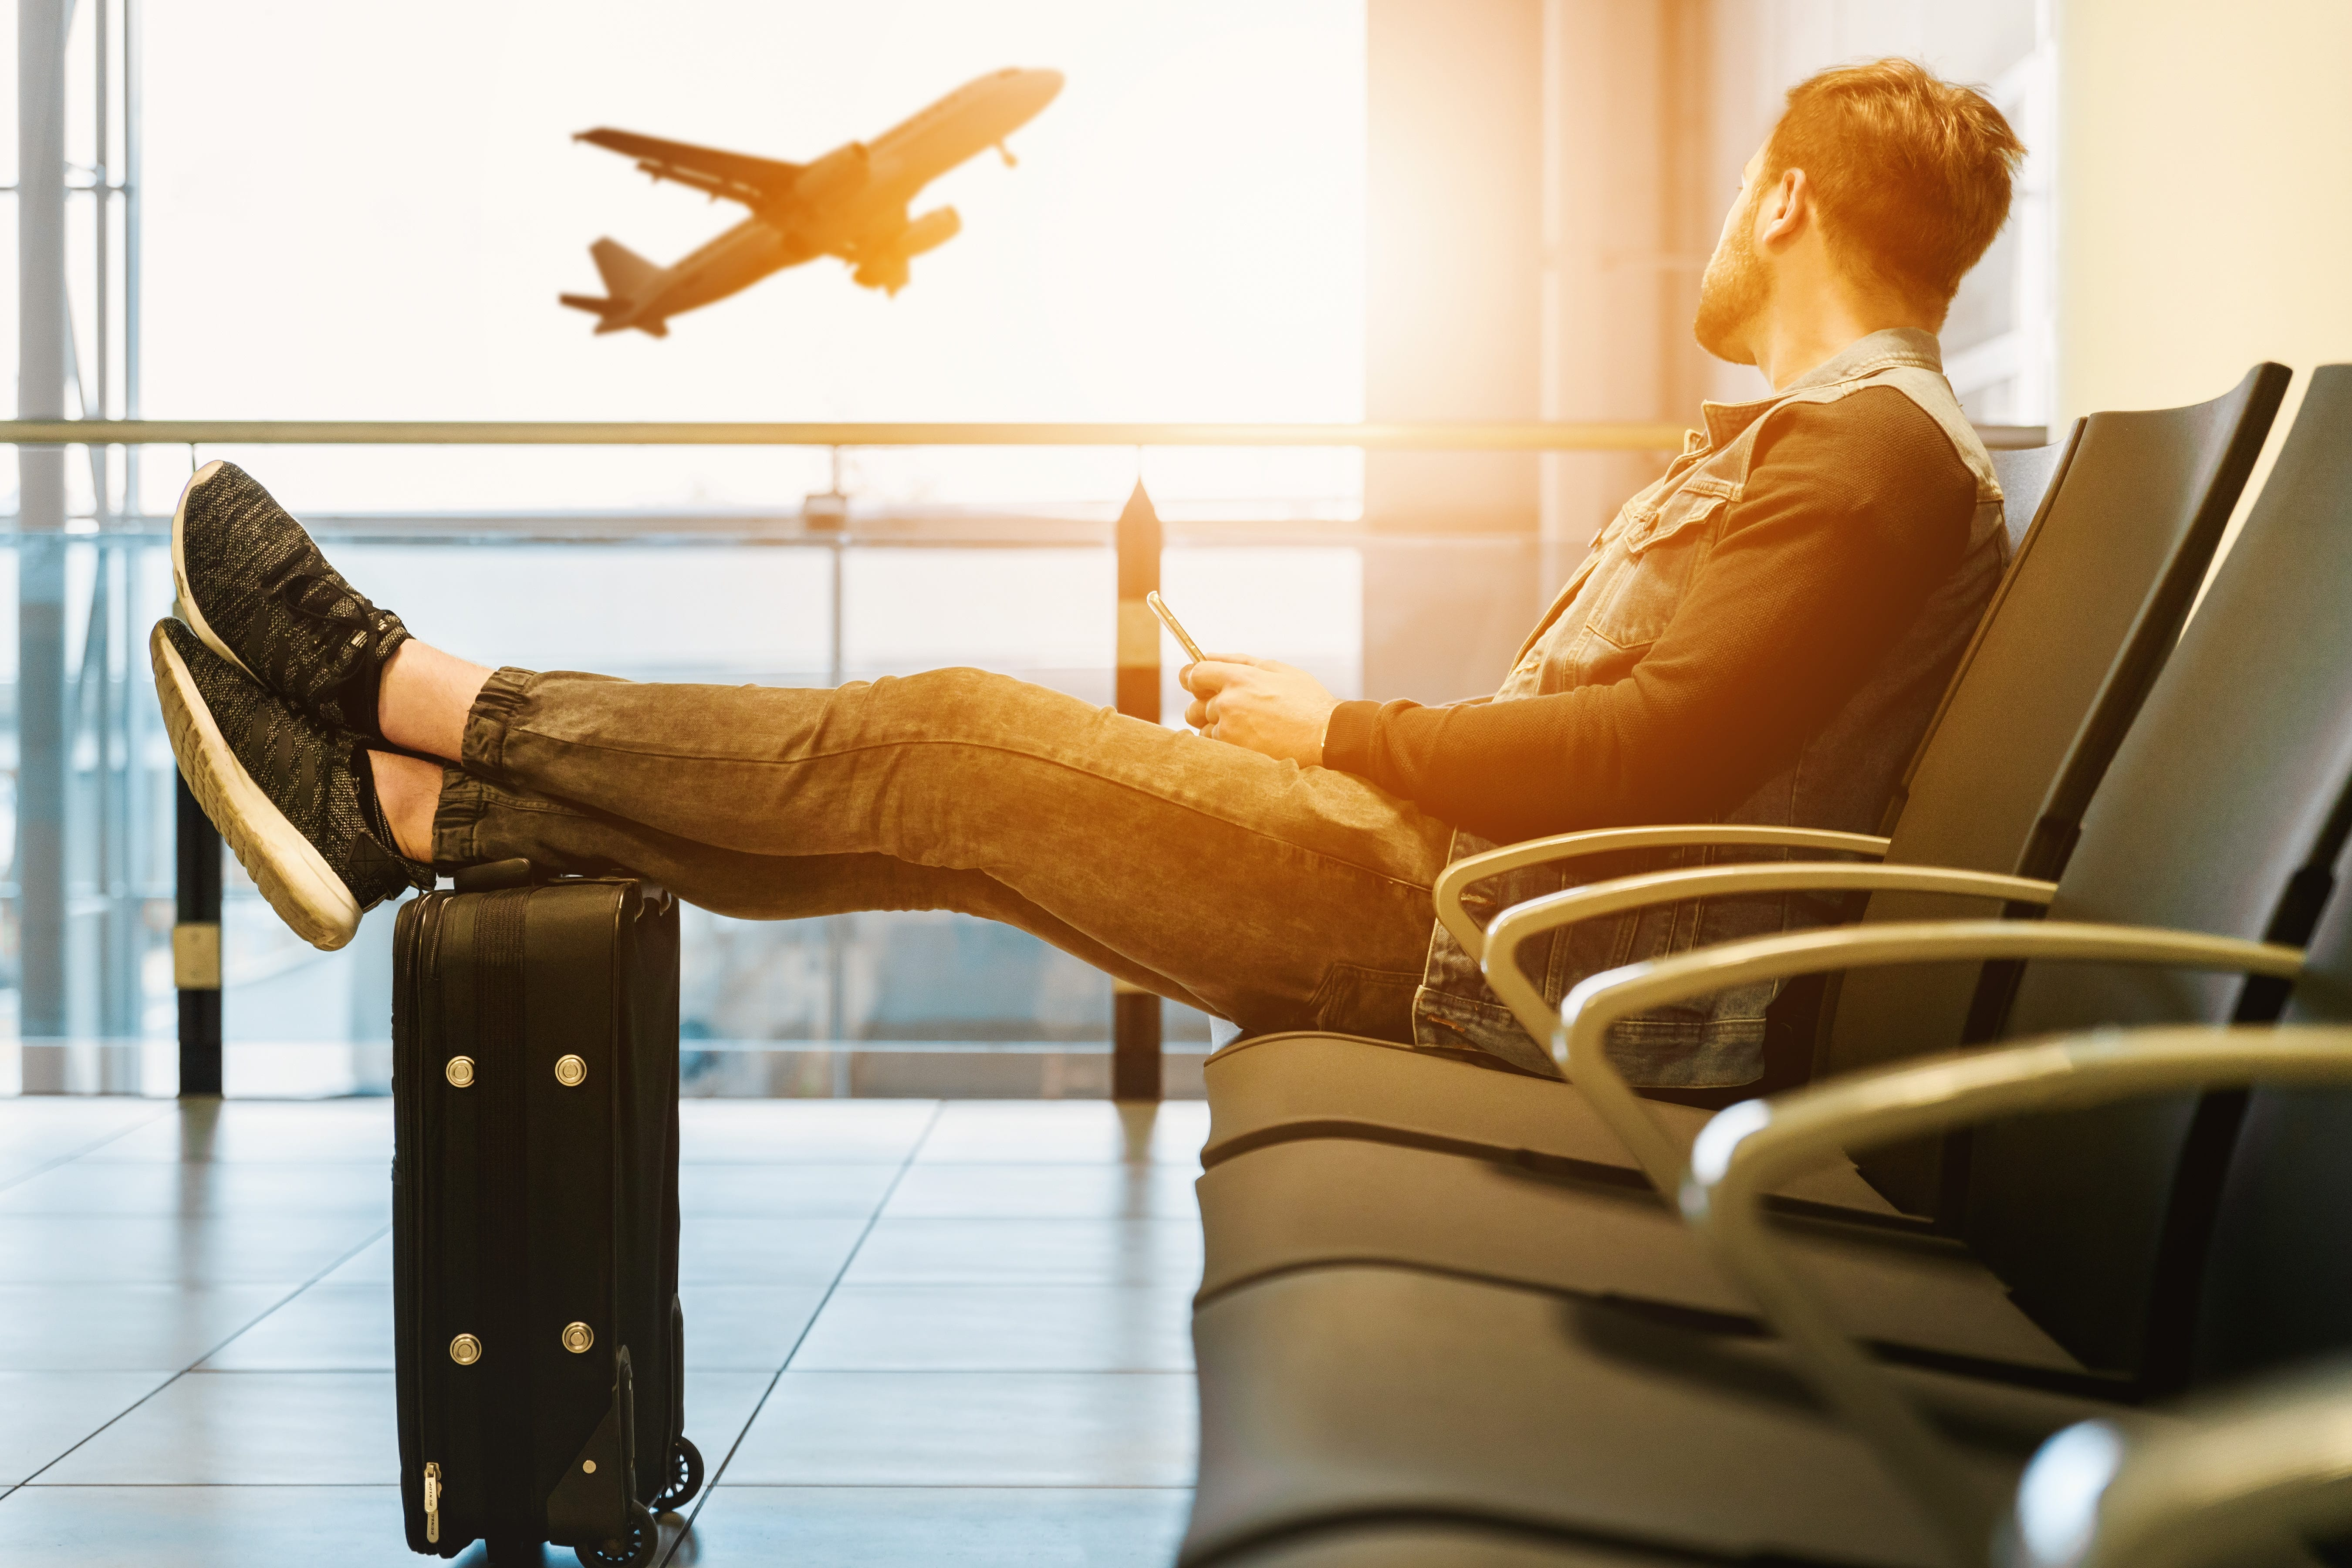 Man sitting on gang chair with feet on luggage looking at airplane; image by JESHOOTS.COM, via Unsplash.com.